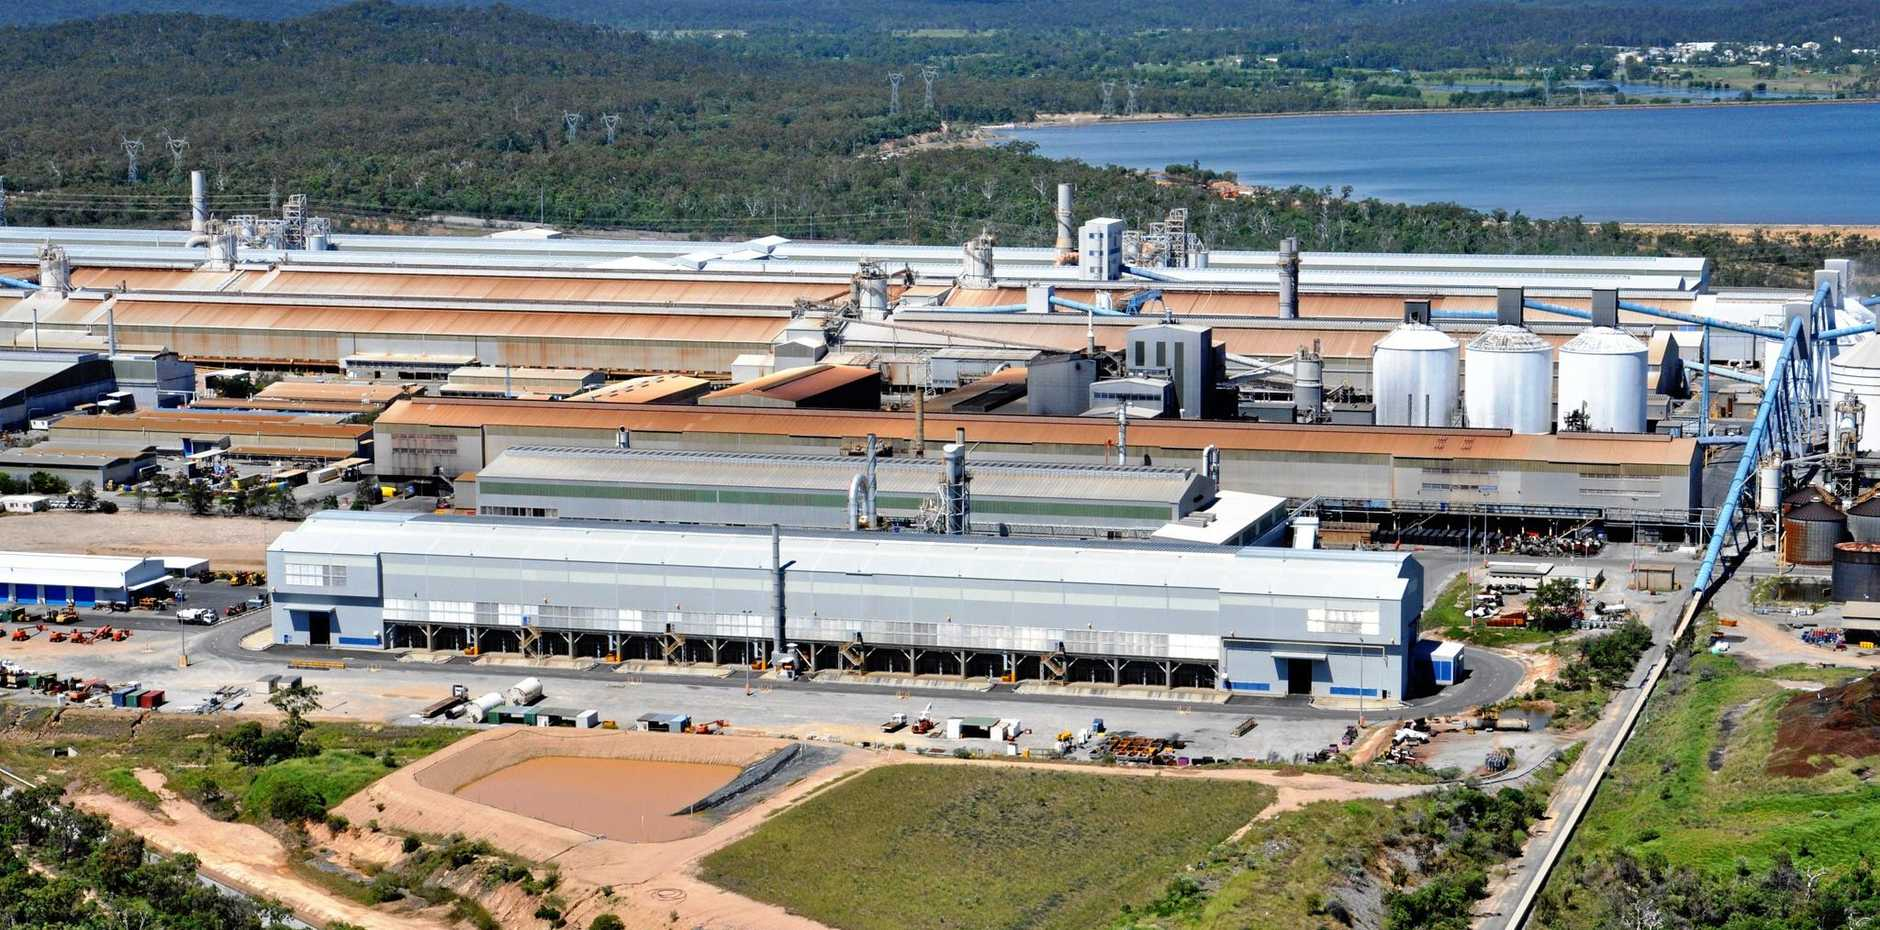 The Rio Tinto-owned Boyne Smelter Limited.